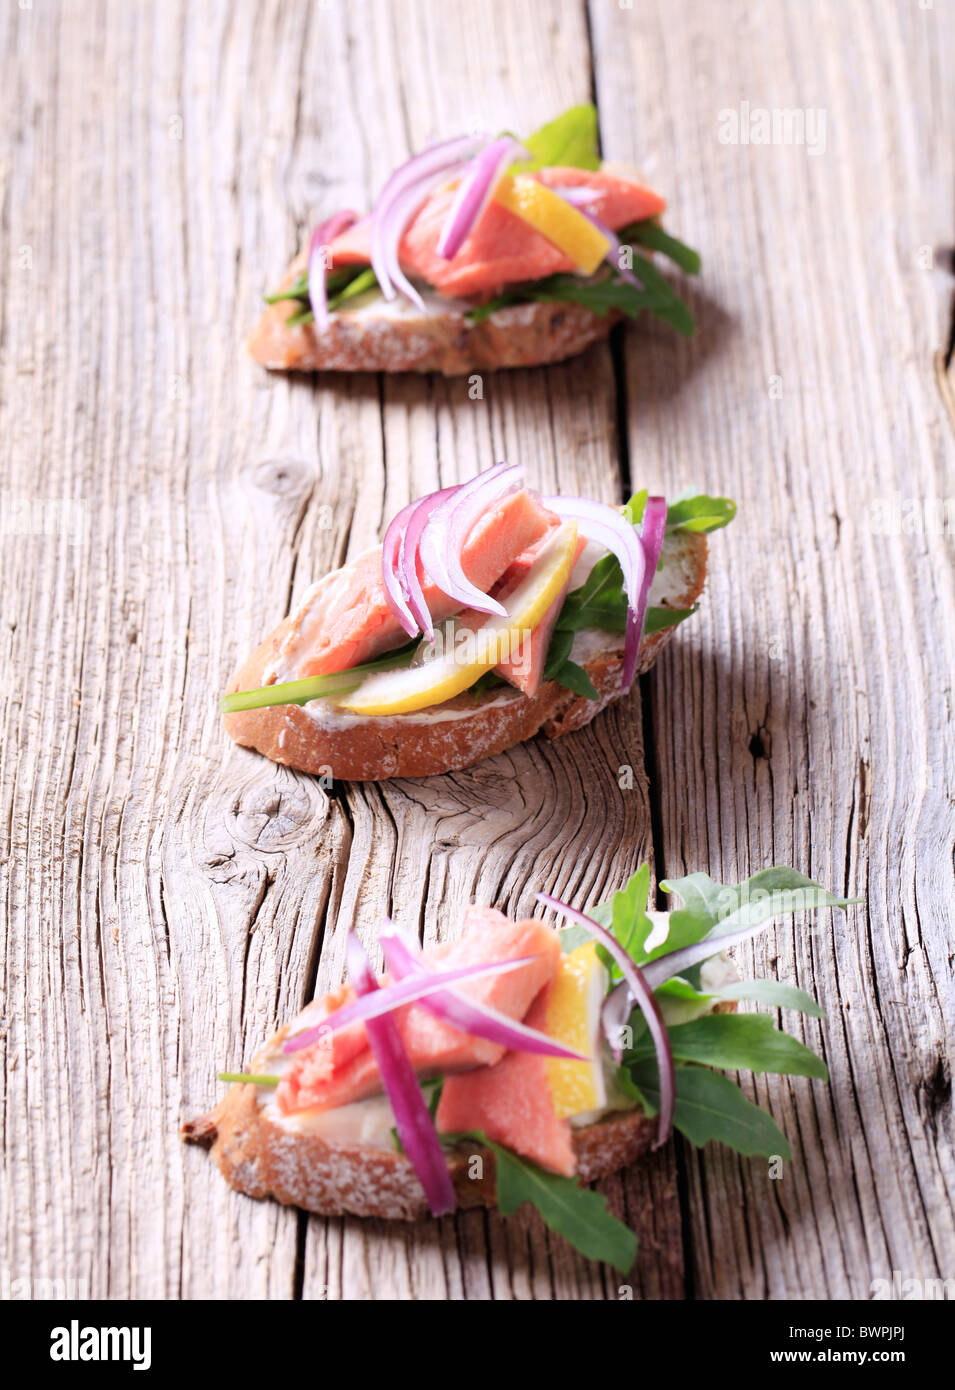 Salmon open faced sandwiches - Stock Image